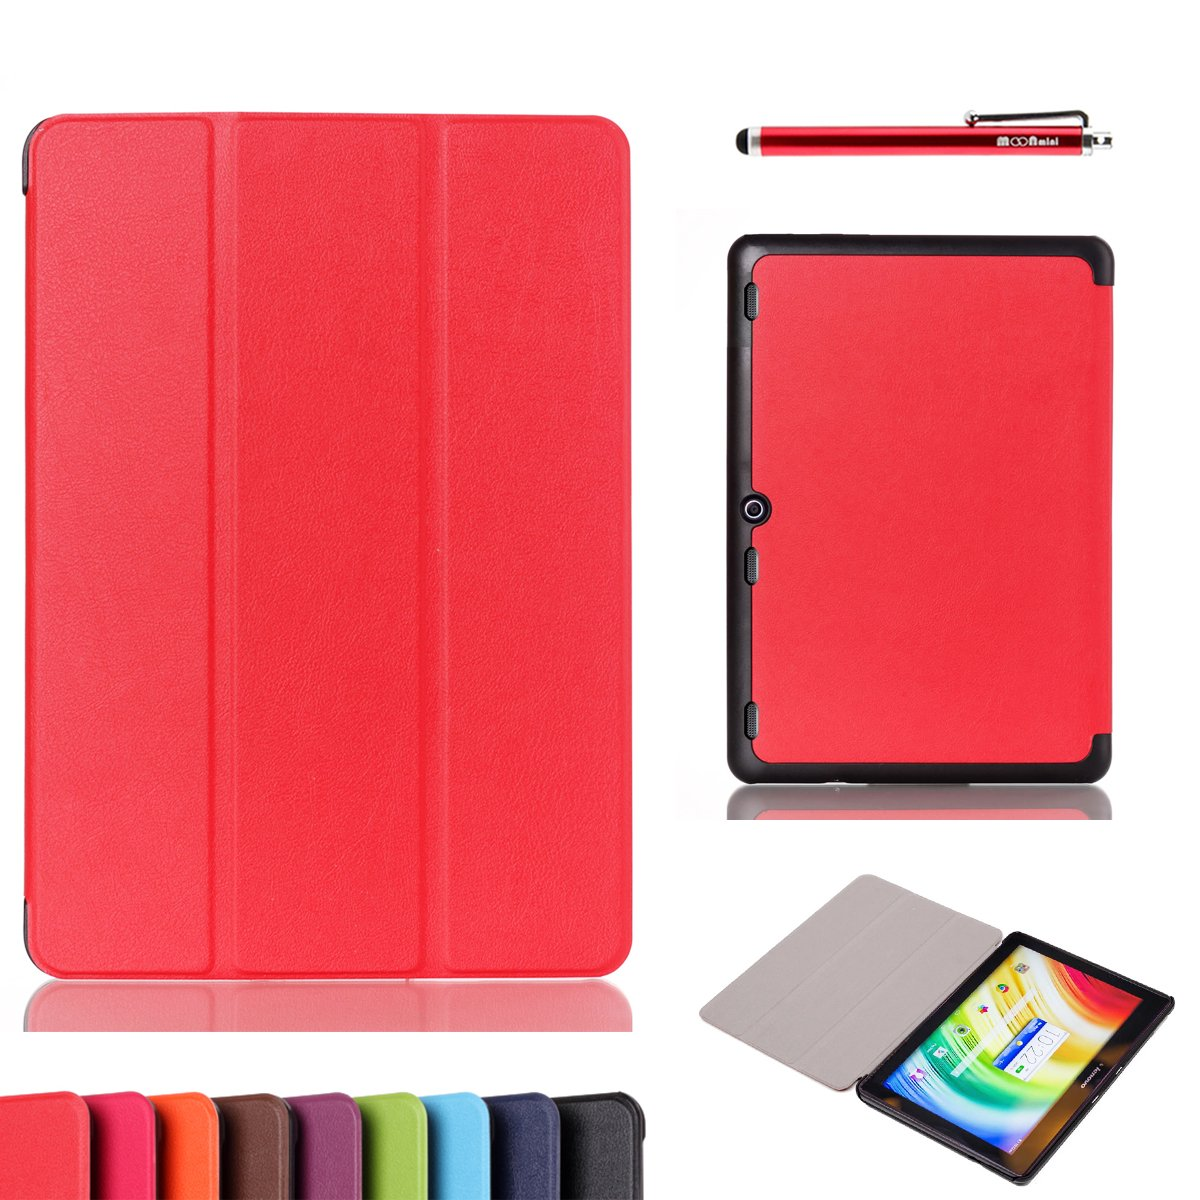 - Backcover Leather Cover Wallet Style Flip Cover Case For ONLY (Cover Red)